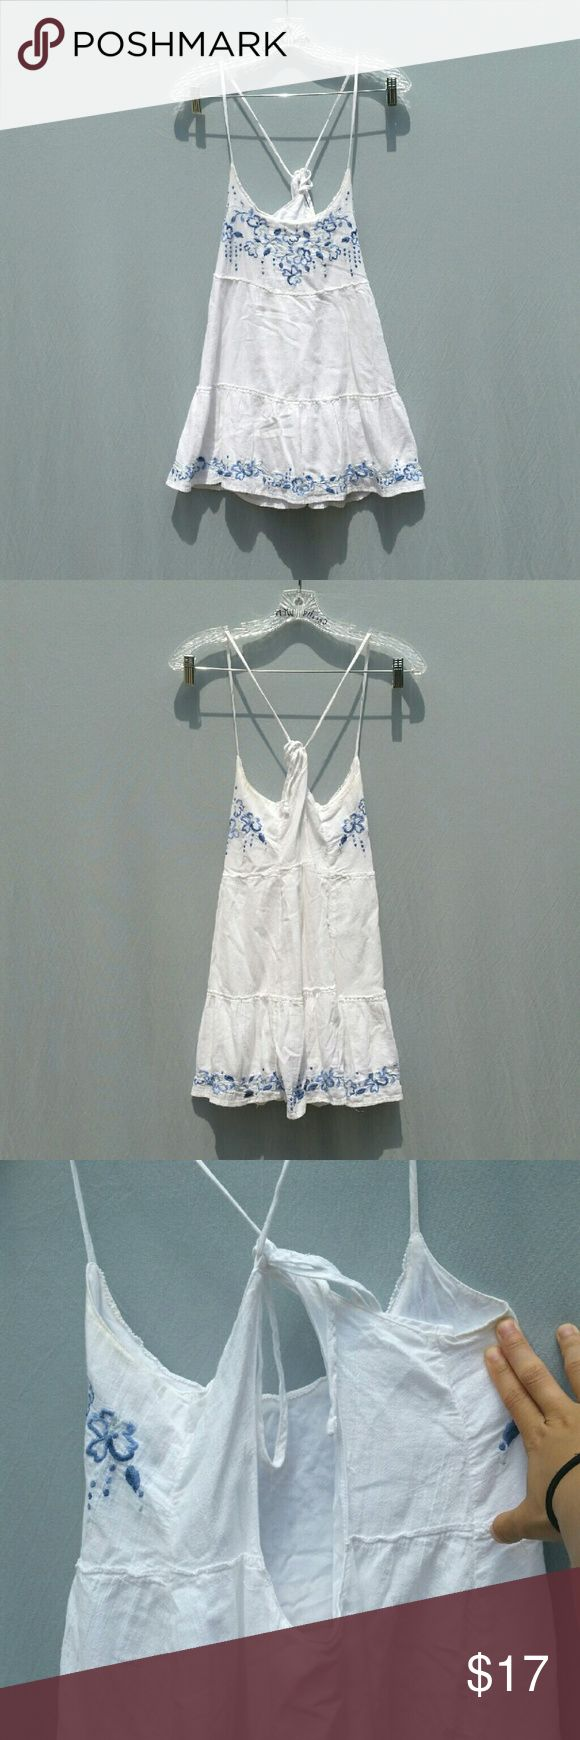 "Blue and white open back embroidered dress xs Worn once open back tie blue and white dress. Similar to a Jada dress. No flaws or stains.  Tag size : XS  Length : 30"" Center neck to hem: 20"" Loose fit. Petite fit. Abercrombie & Fitch Dresses Mini"